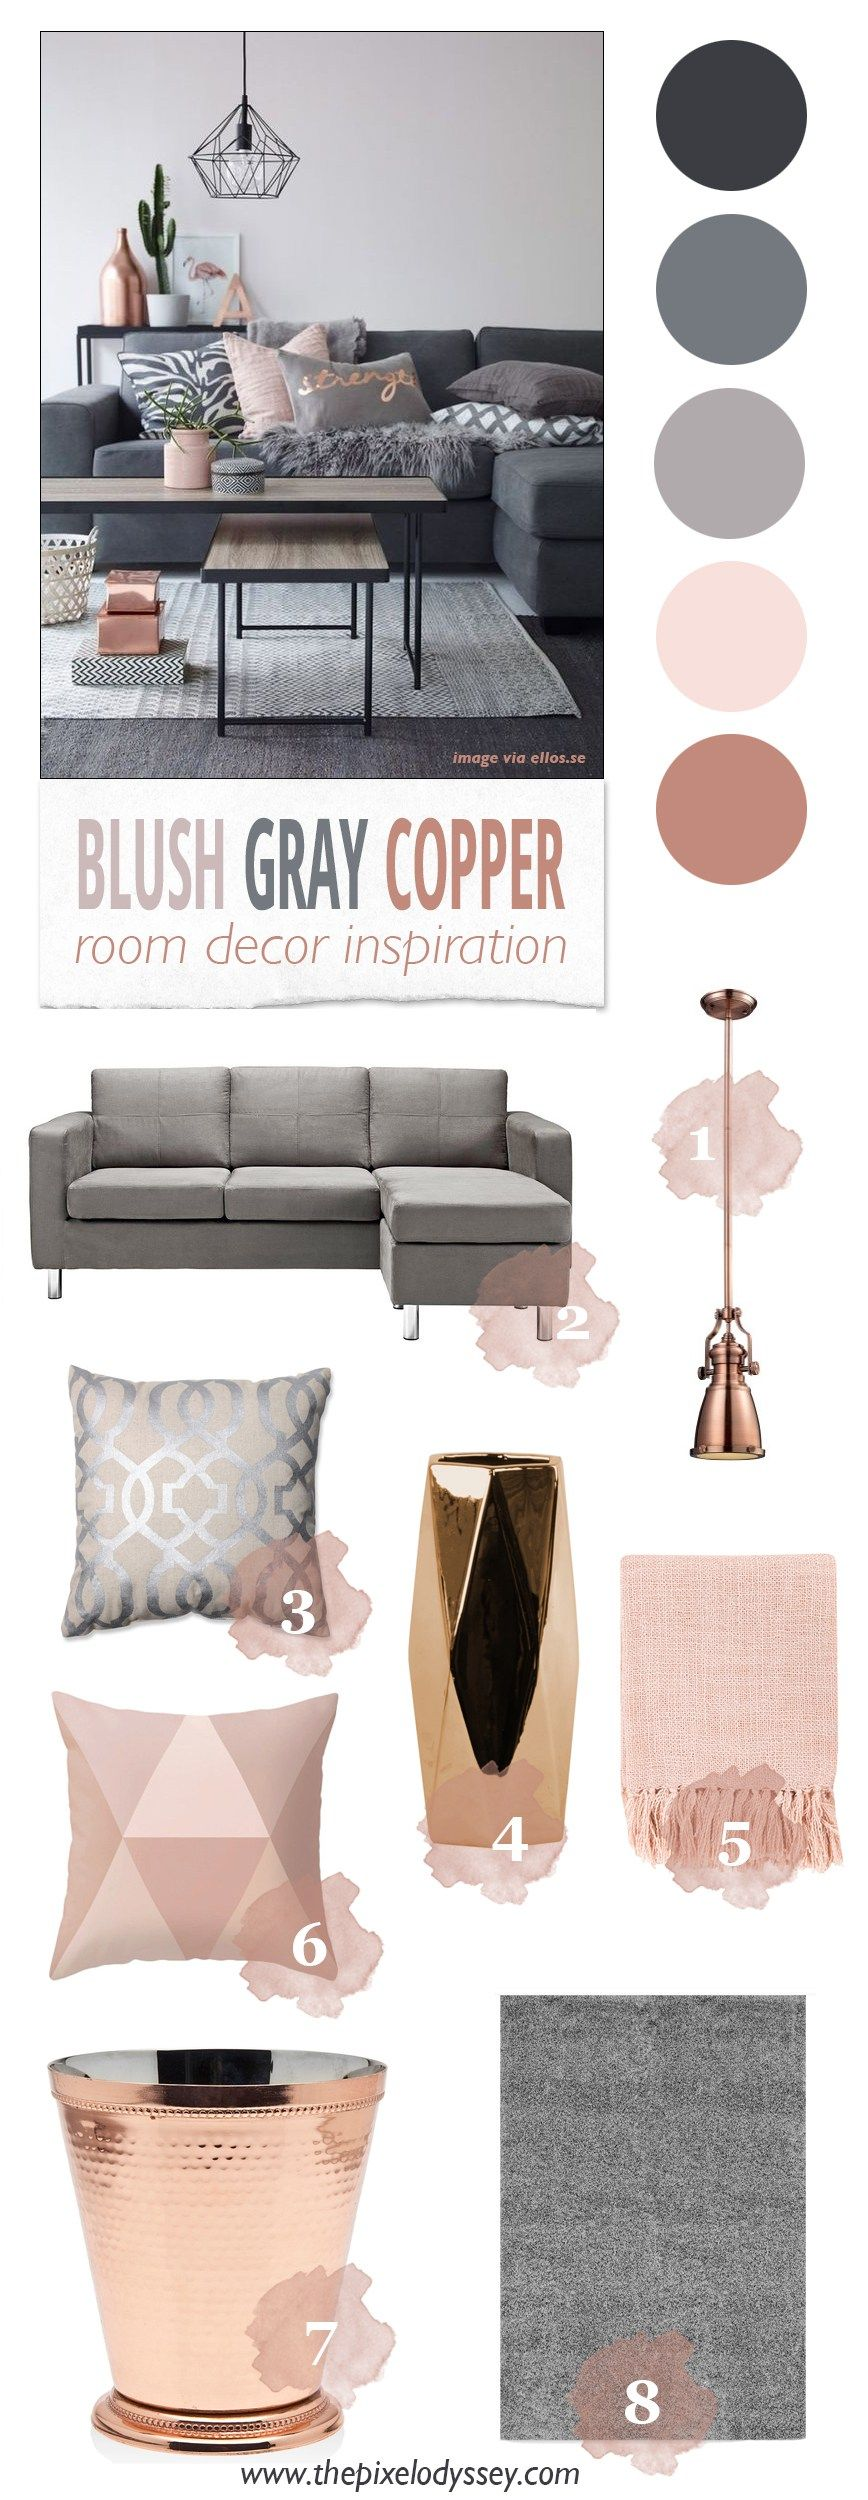 Blush gray copper room decor inspiration room decor for Living rooms ideas and inspiration